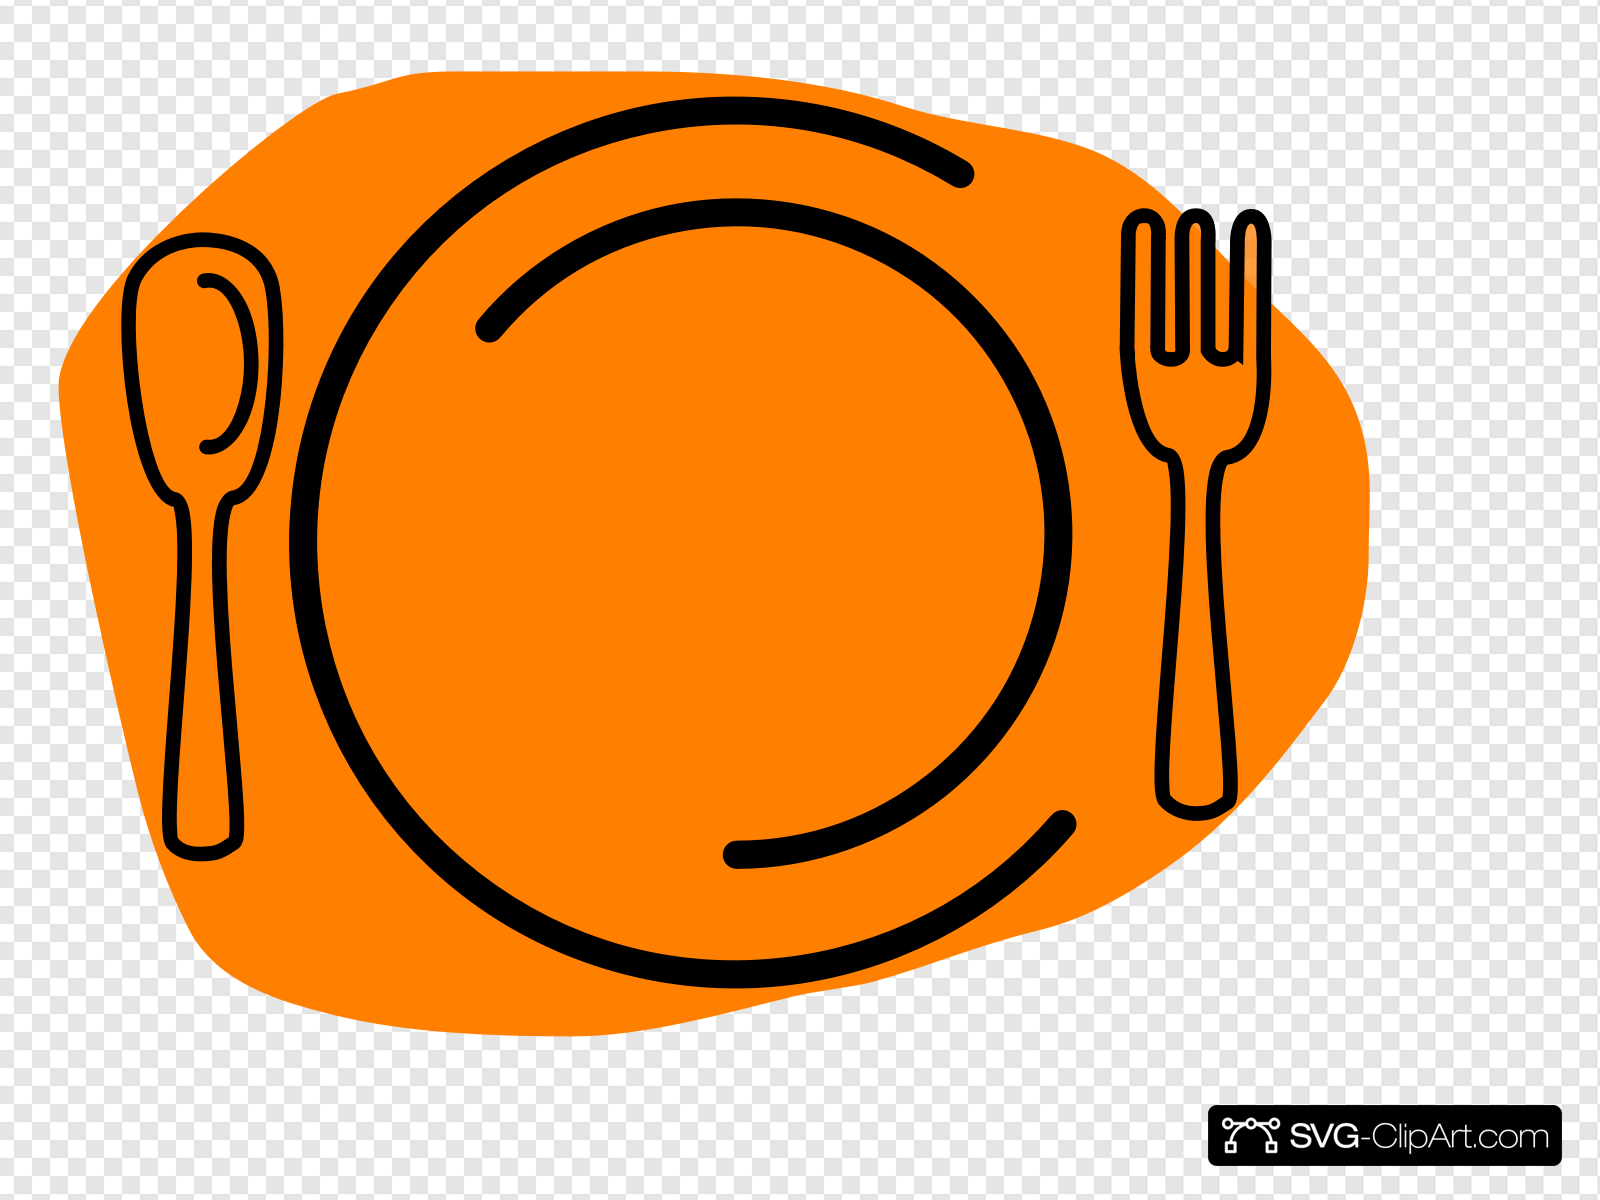 Dinner Plate Clip art, Icon and SVG.